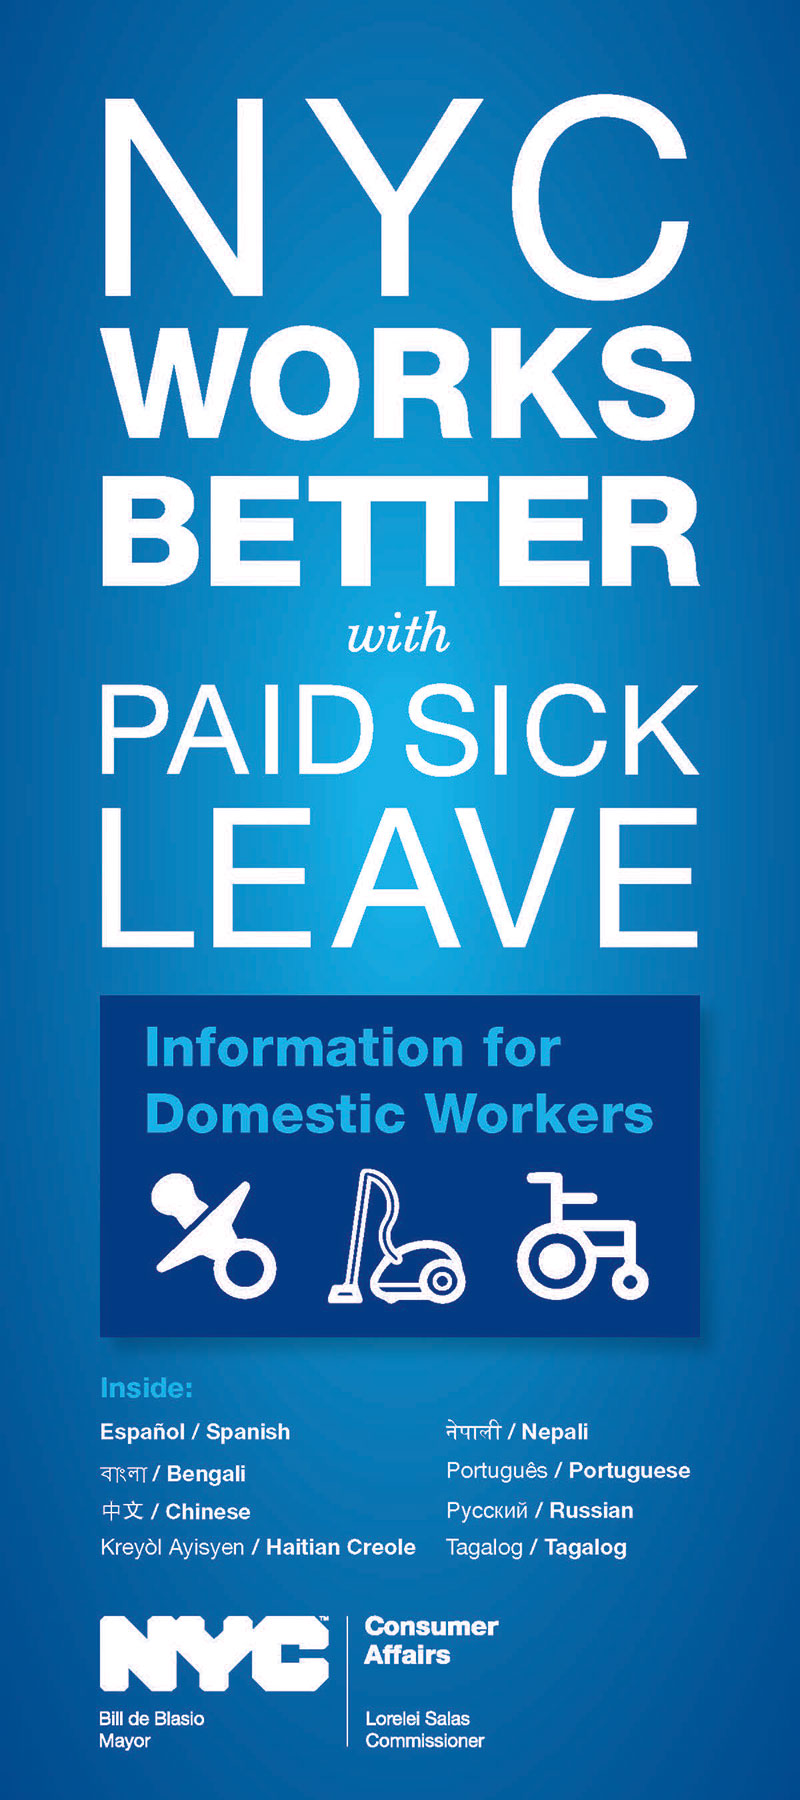 Information for Domestic Workers about Paid Sick Leave in 9 languages